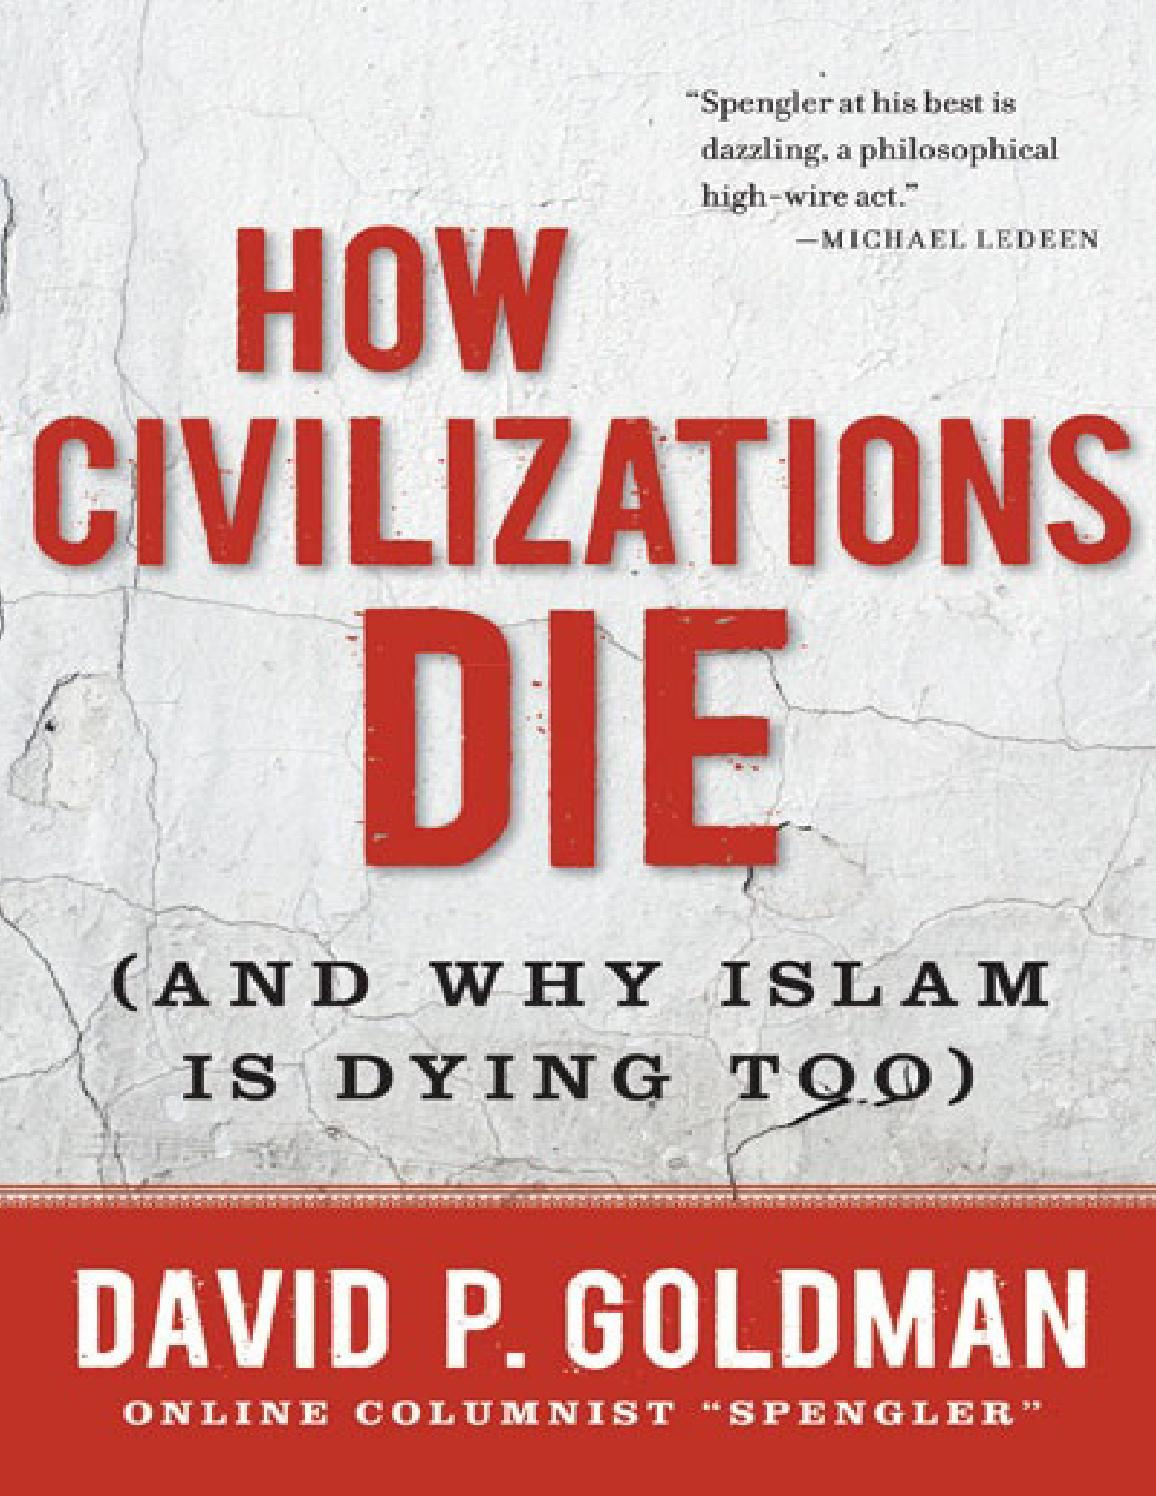 How civilizations die and why islam is dying by noxcovenant issuu fandeluxe Choice Image